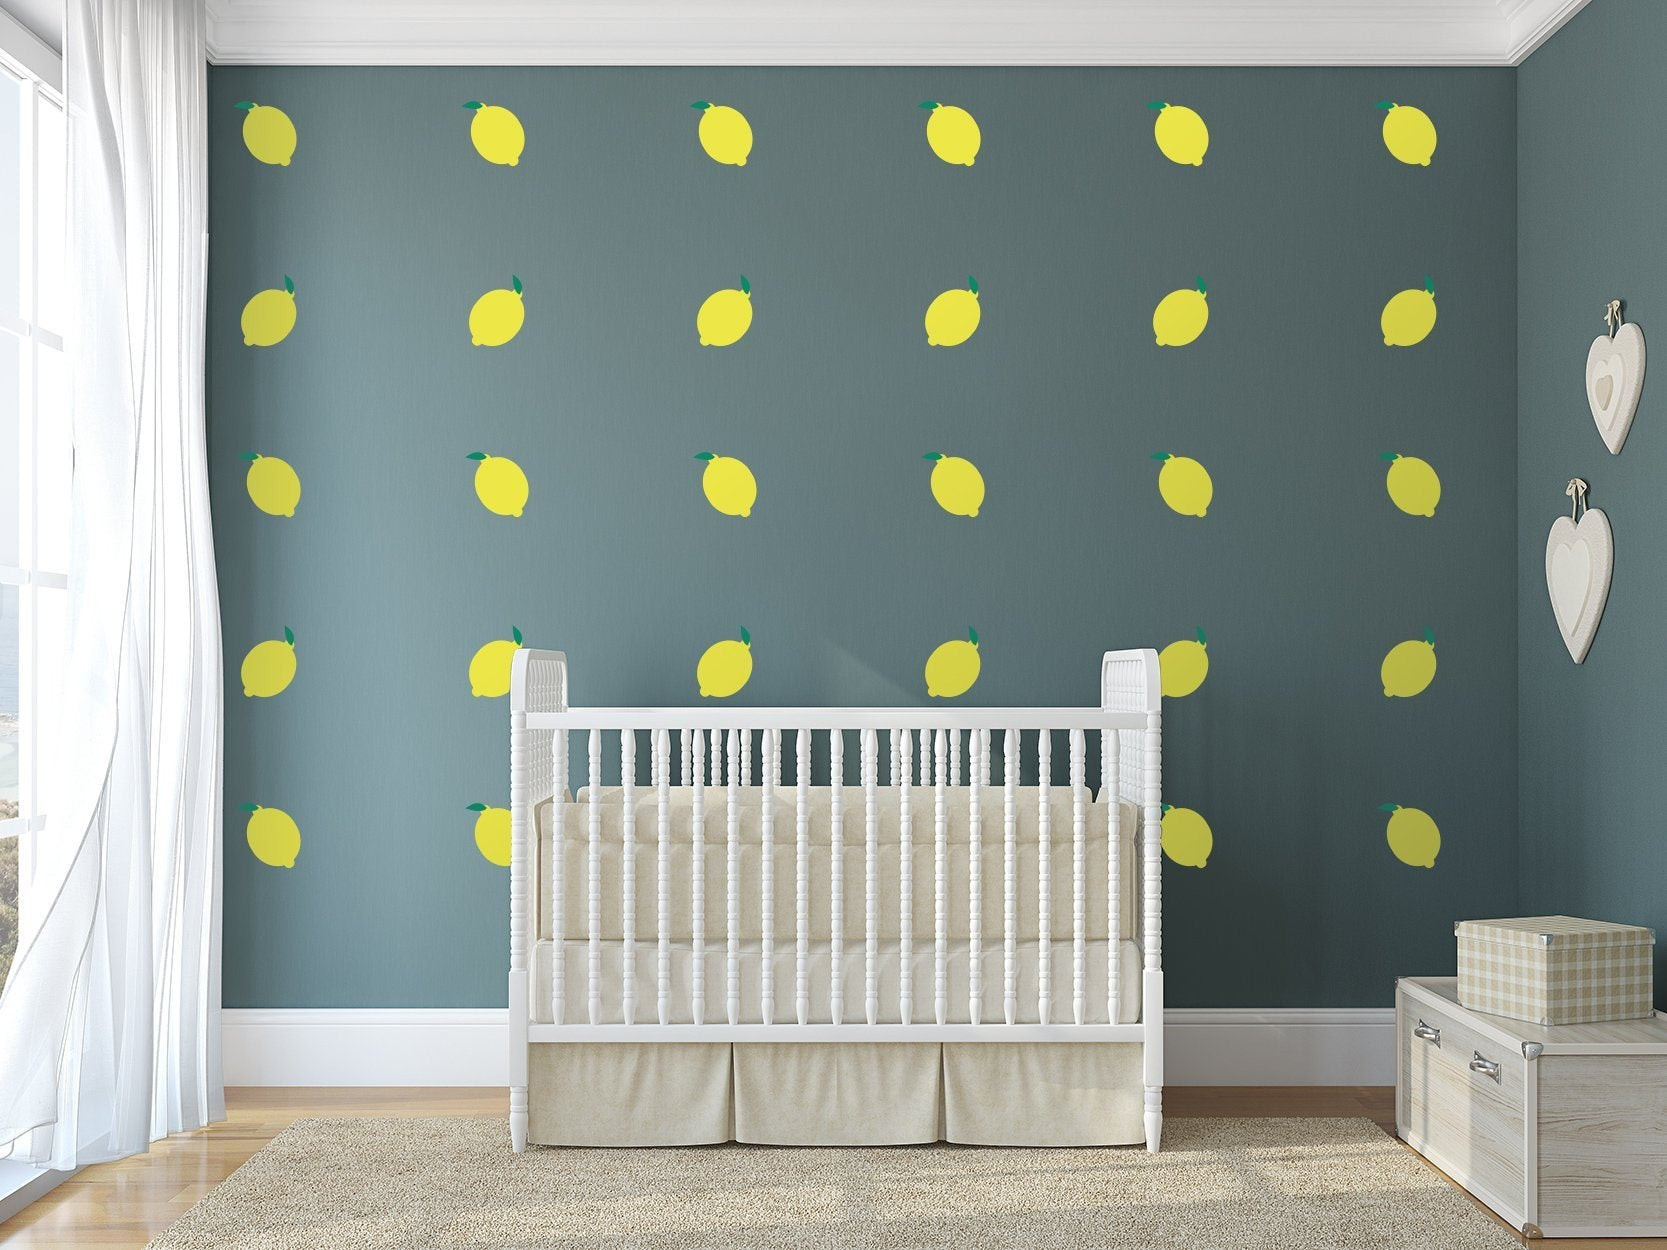 Lemon Nursery Wall Art -  Food Theme Vinyl Wall Decals For Nurseries, Children's Rooms, And Home Decor